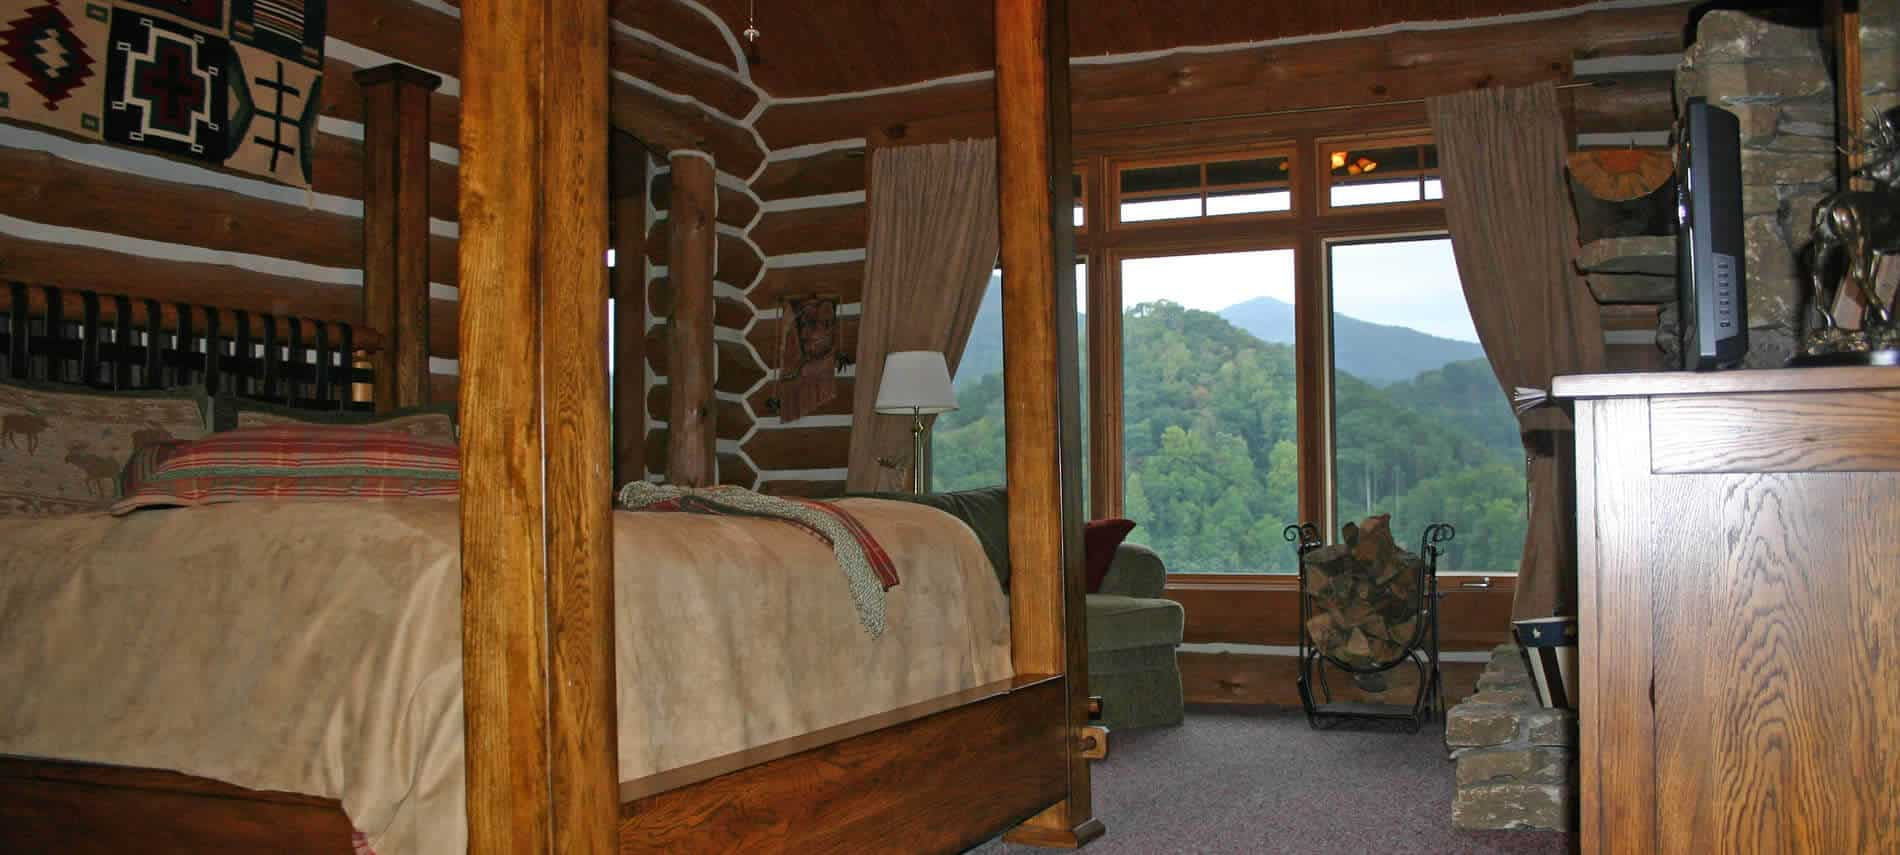 Large wooden poster bed in cozy bedroom with large windows overlooking tree-covered hills.